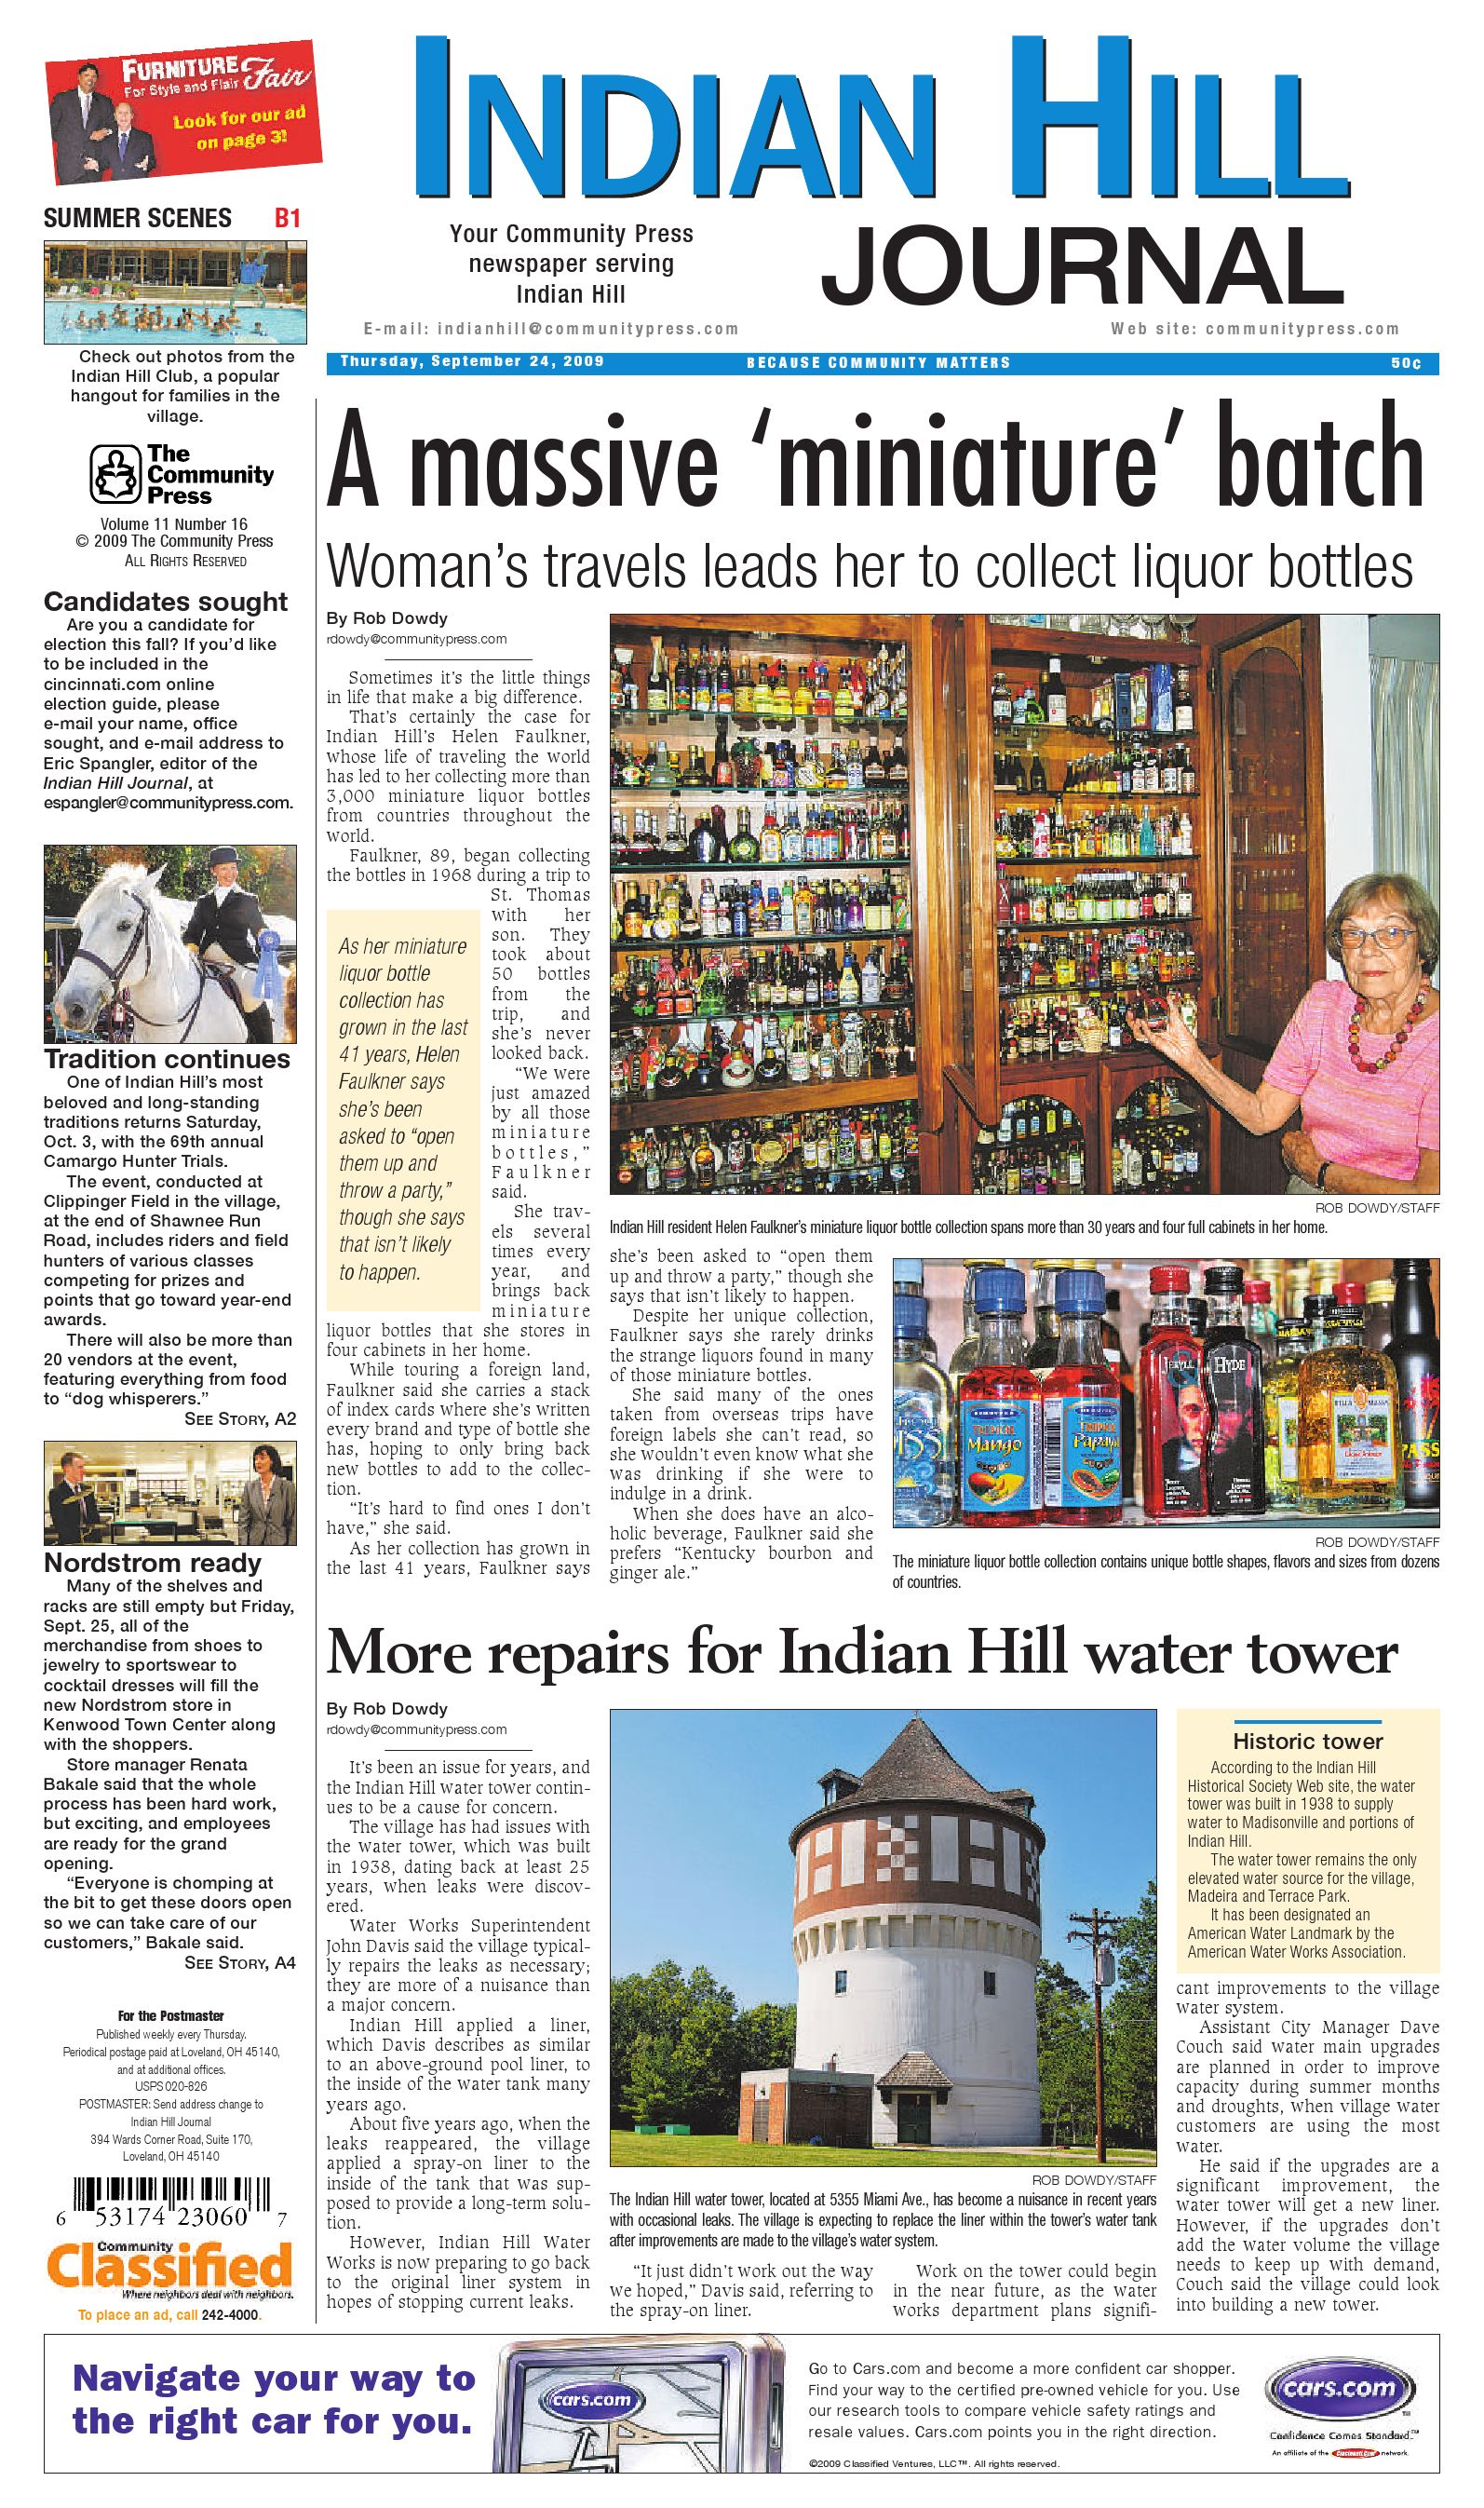 b1411bd95b indian-hill-journal-092309 by Enquirer Media - issuu